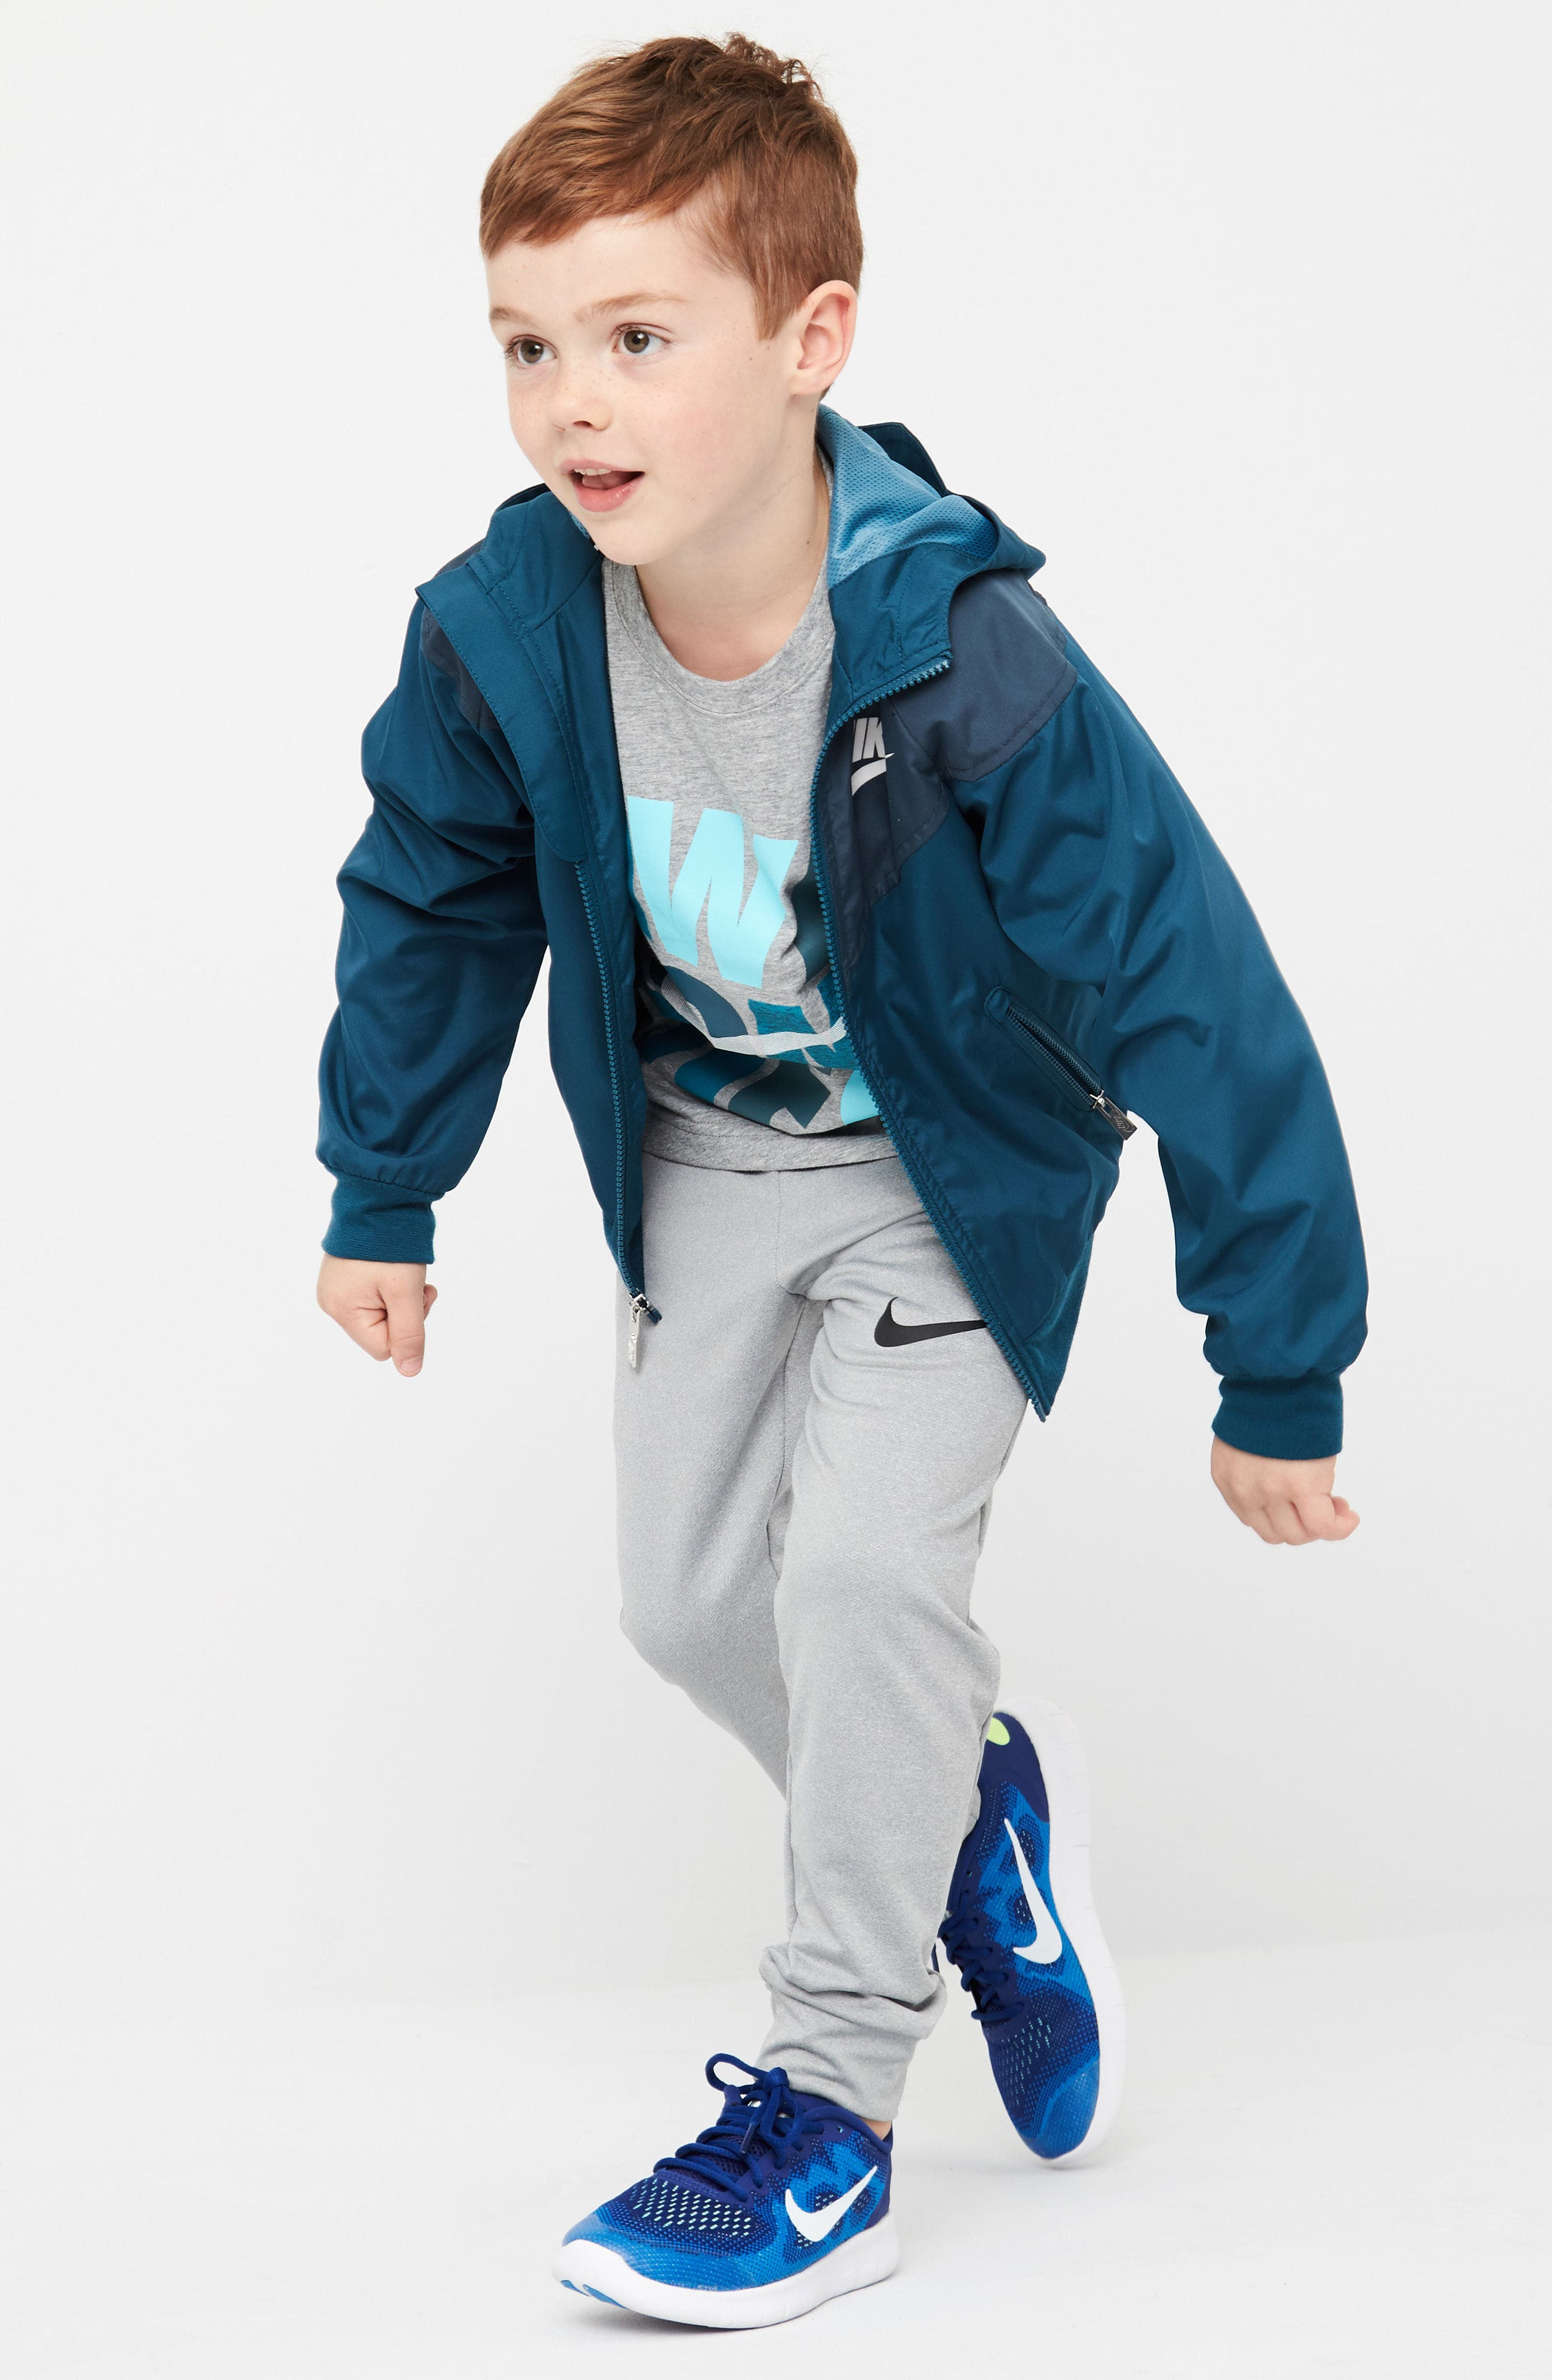 Nike T-Shirt & Pants Outfit with Accessories (Toddler Boys & Little Boys)